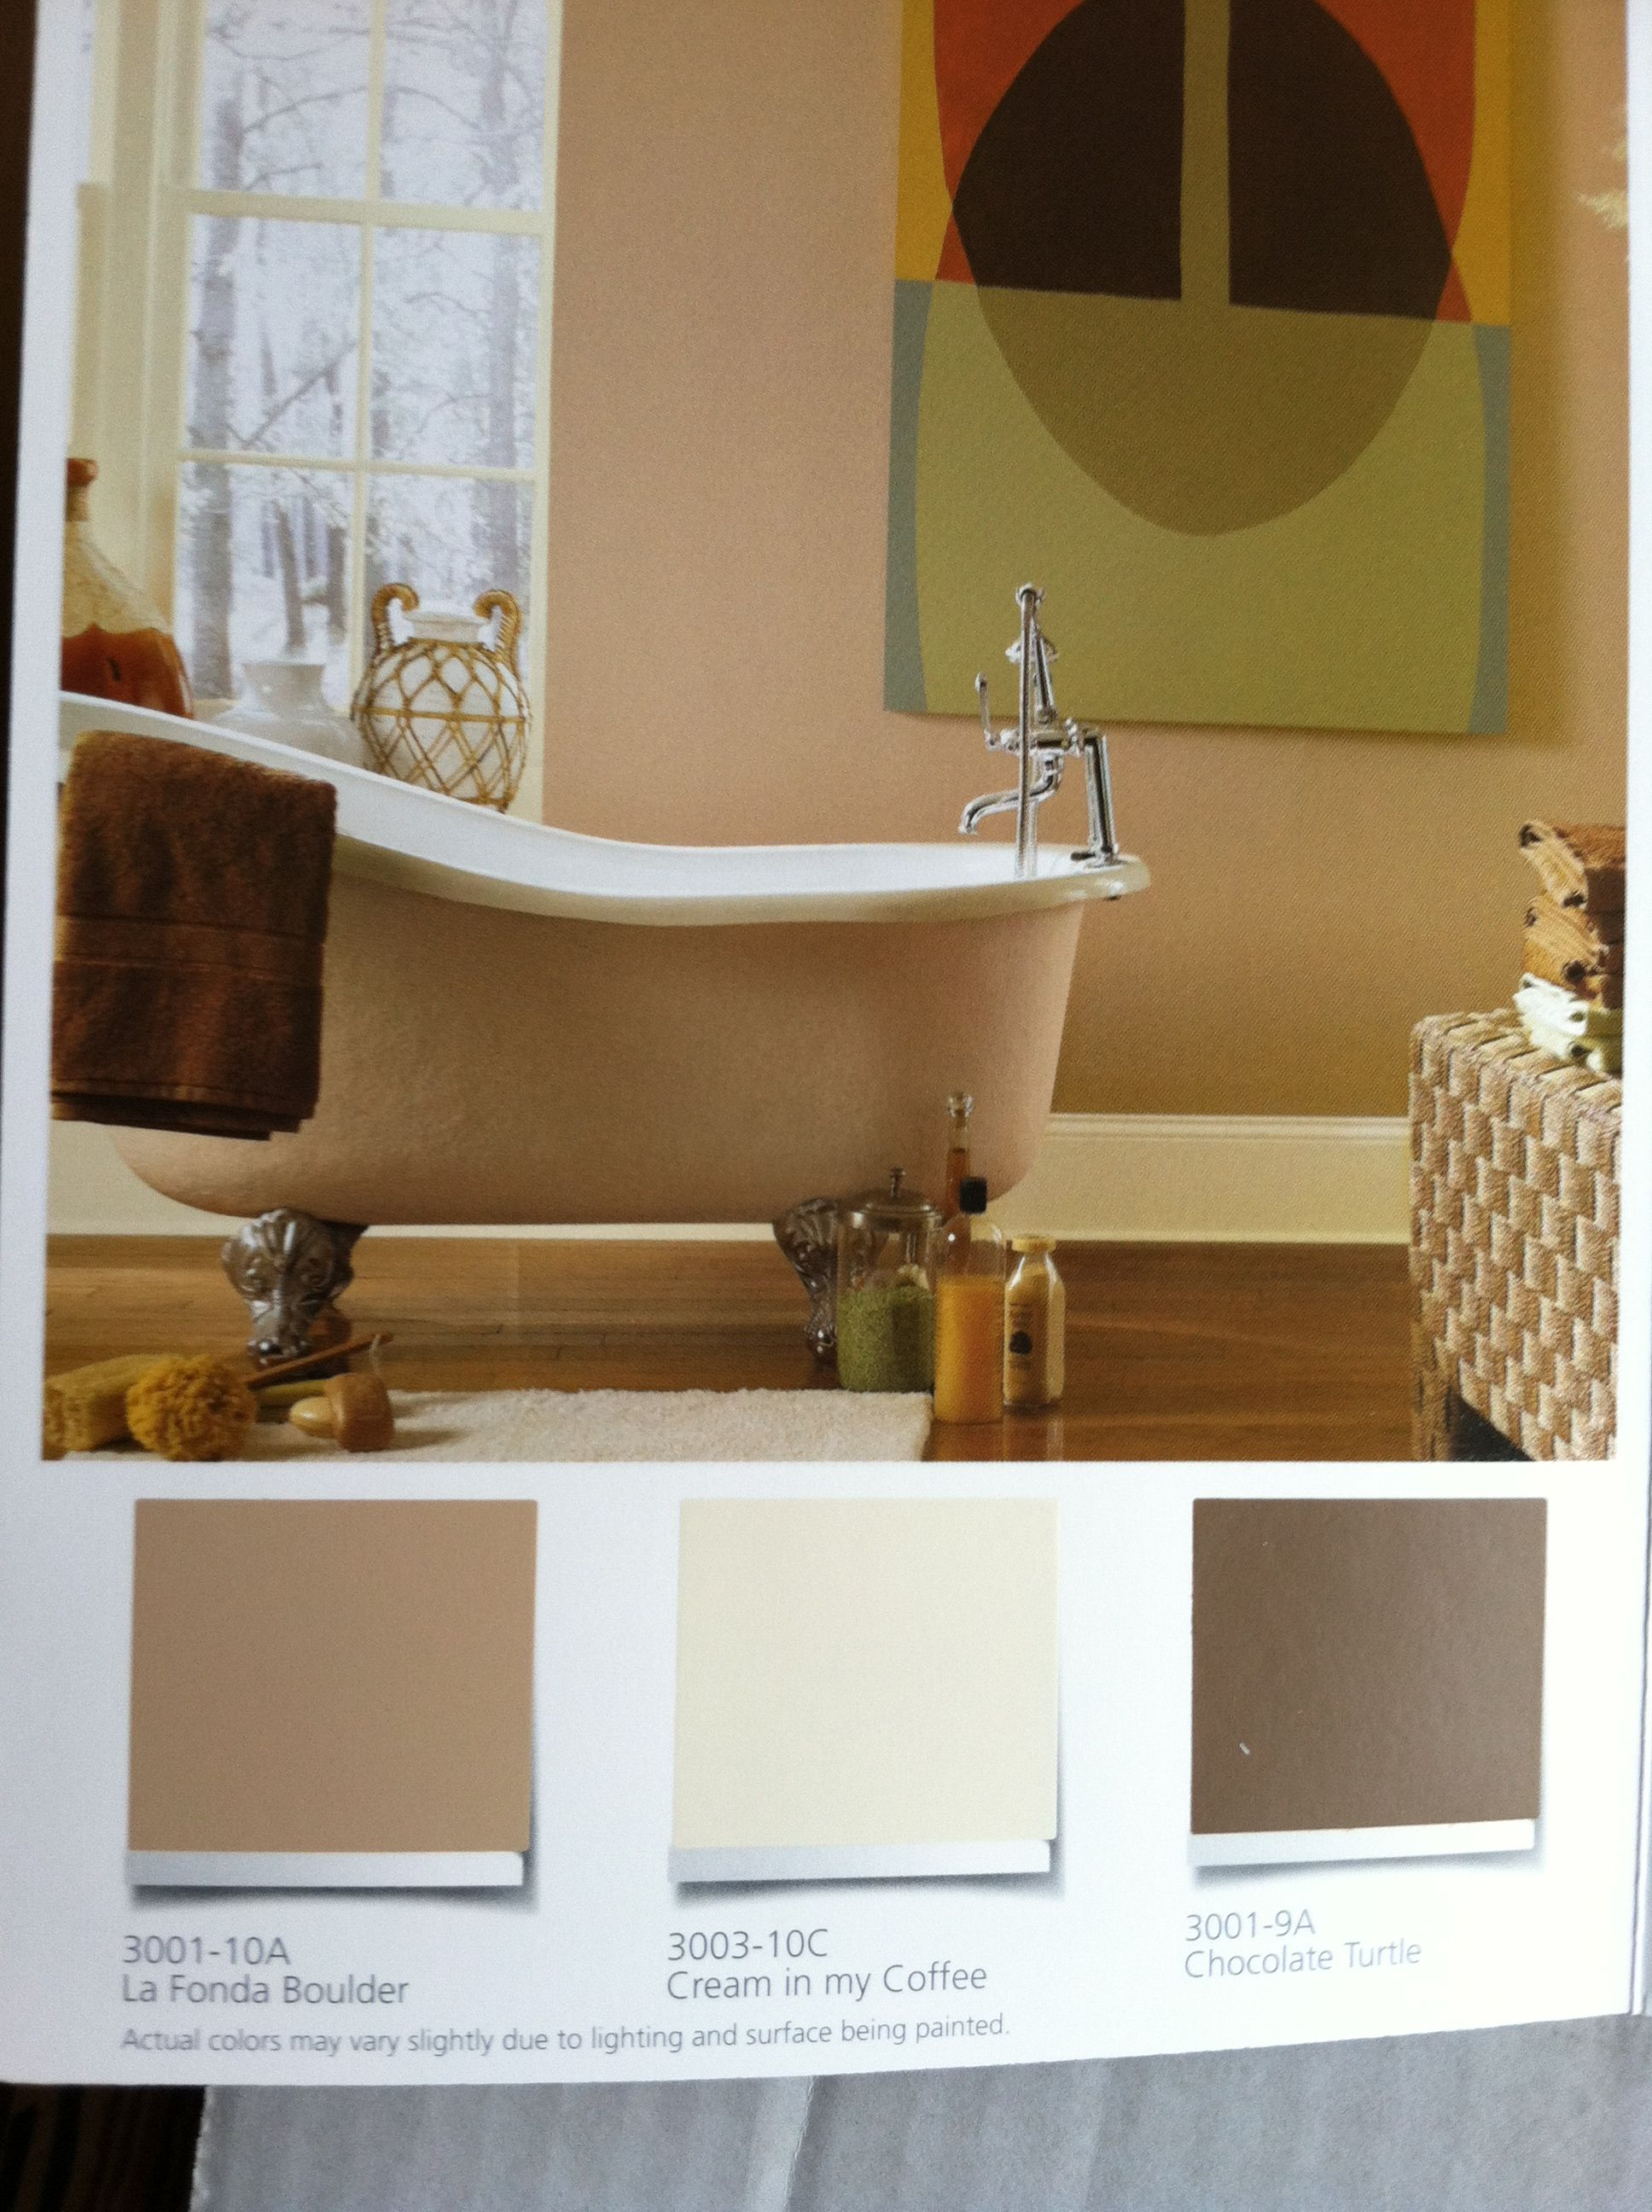 Valspar Paint In La Fonda Boulder Cream In My Coffee And Chocolate Turtle From Lowes Living Room Colors Bathroom Paint Colors Favorite Paint Colors